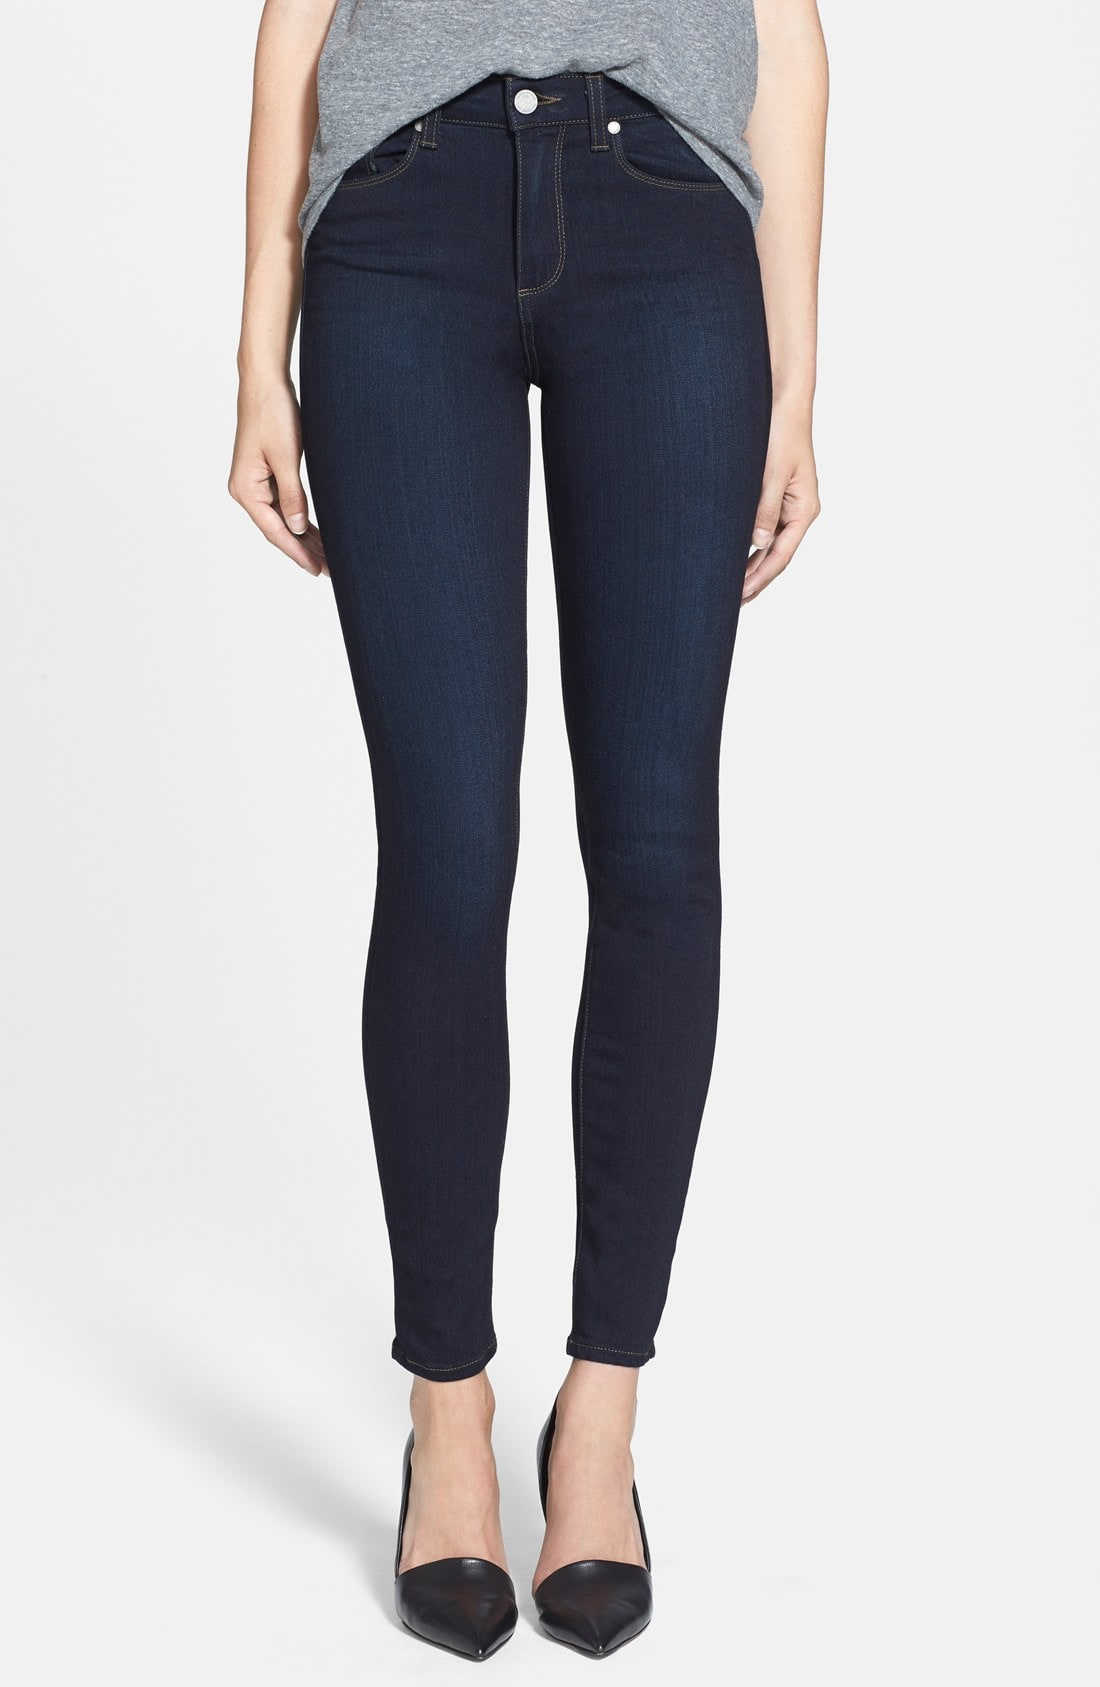 Look stylish with Paige Jeans